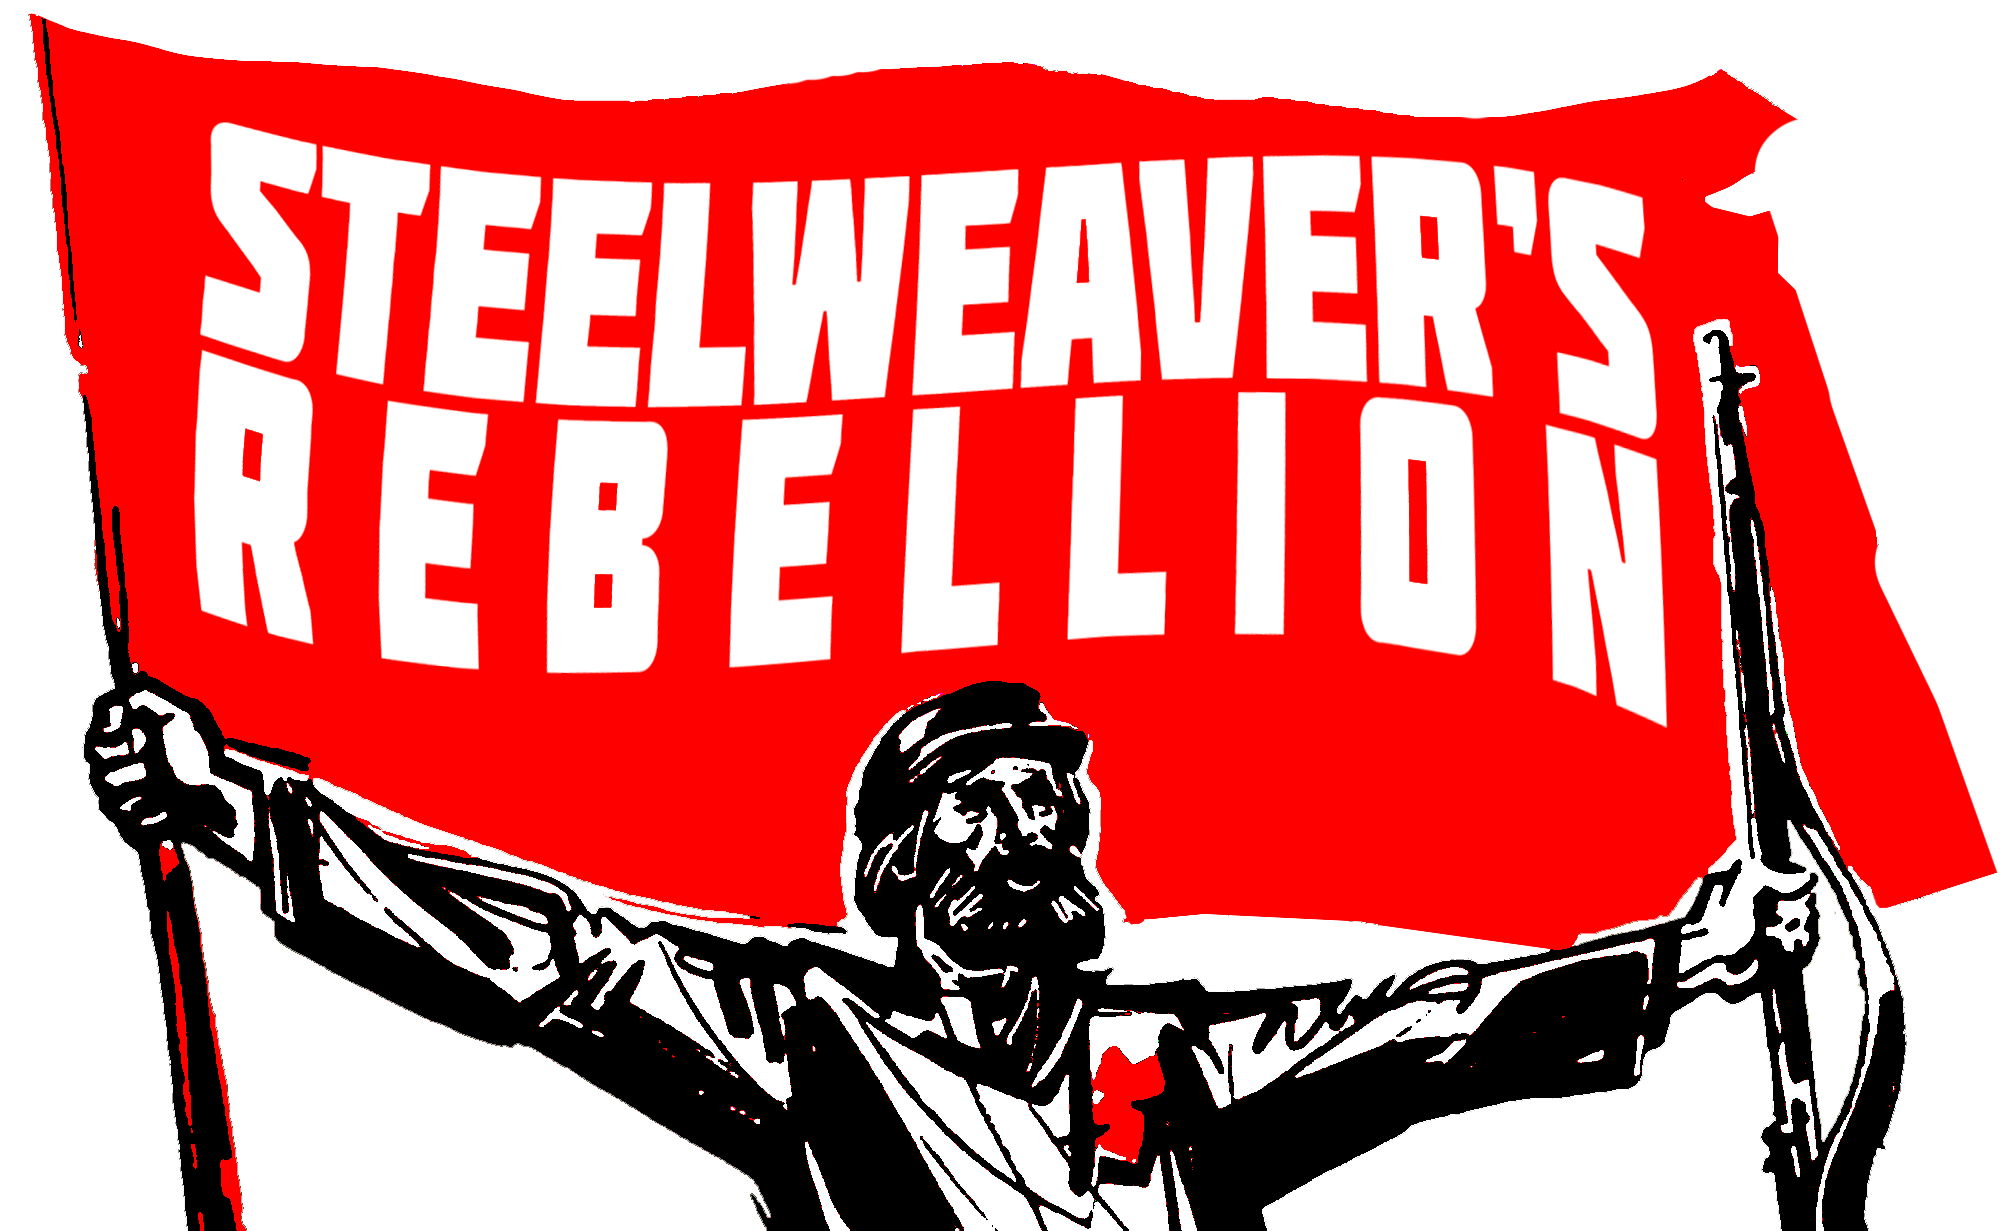 Steelweaver's Rebellion